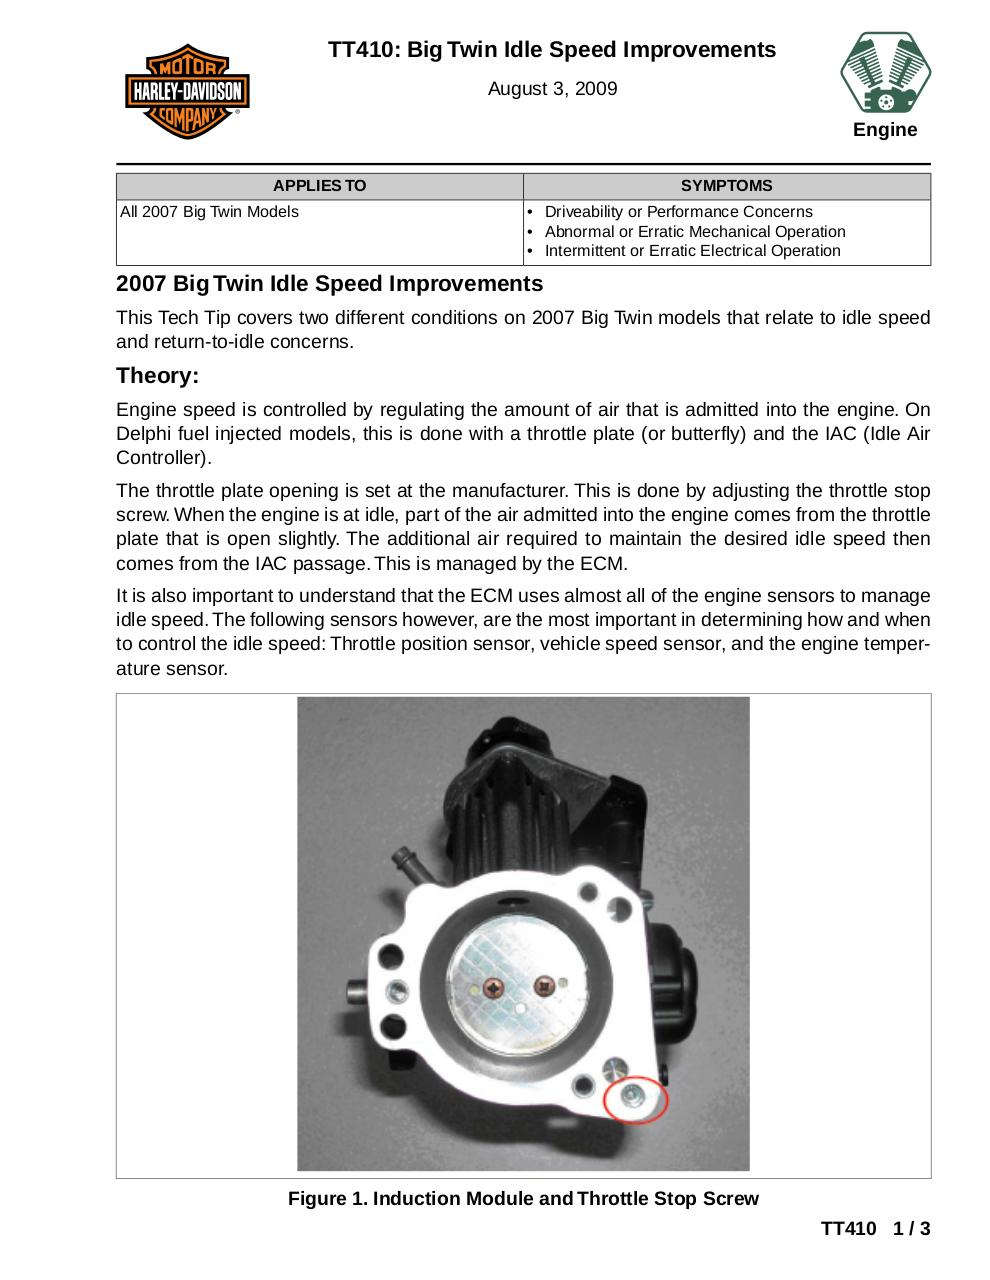 TT410: Big Twin Idle Speed Improvements by Dept 625 Service